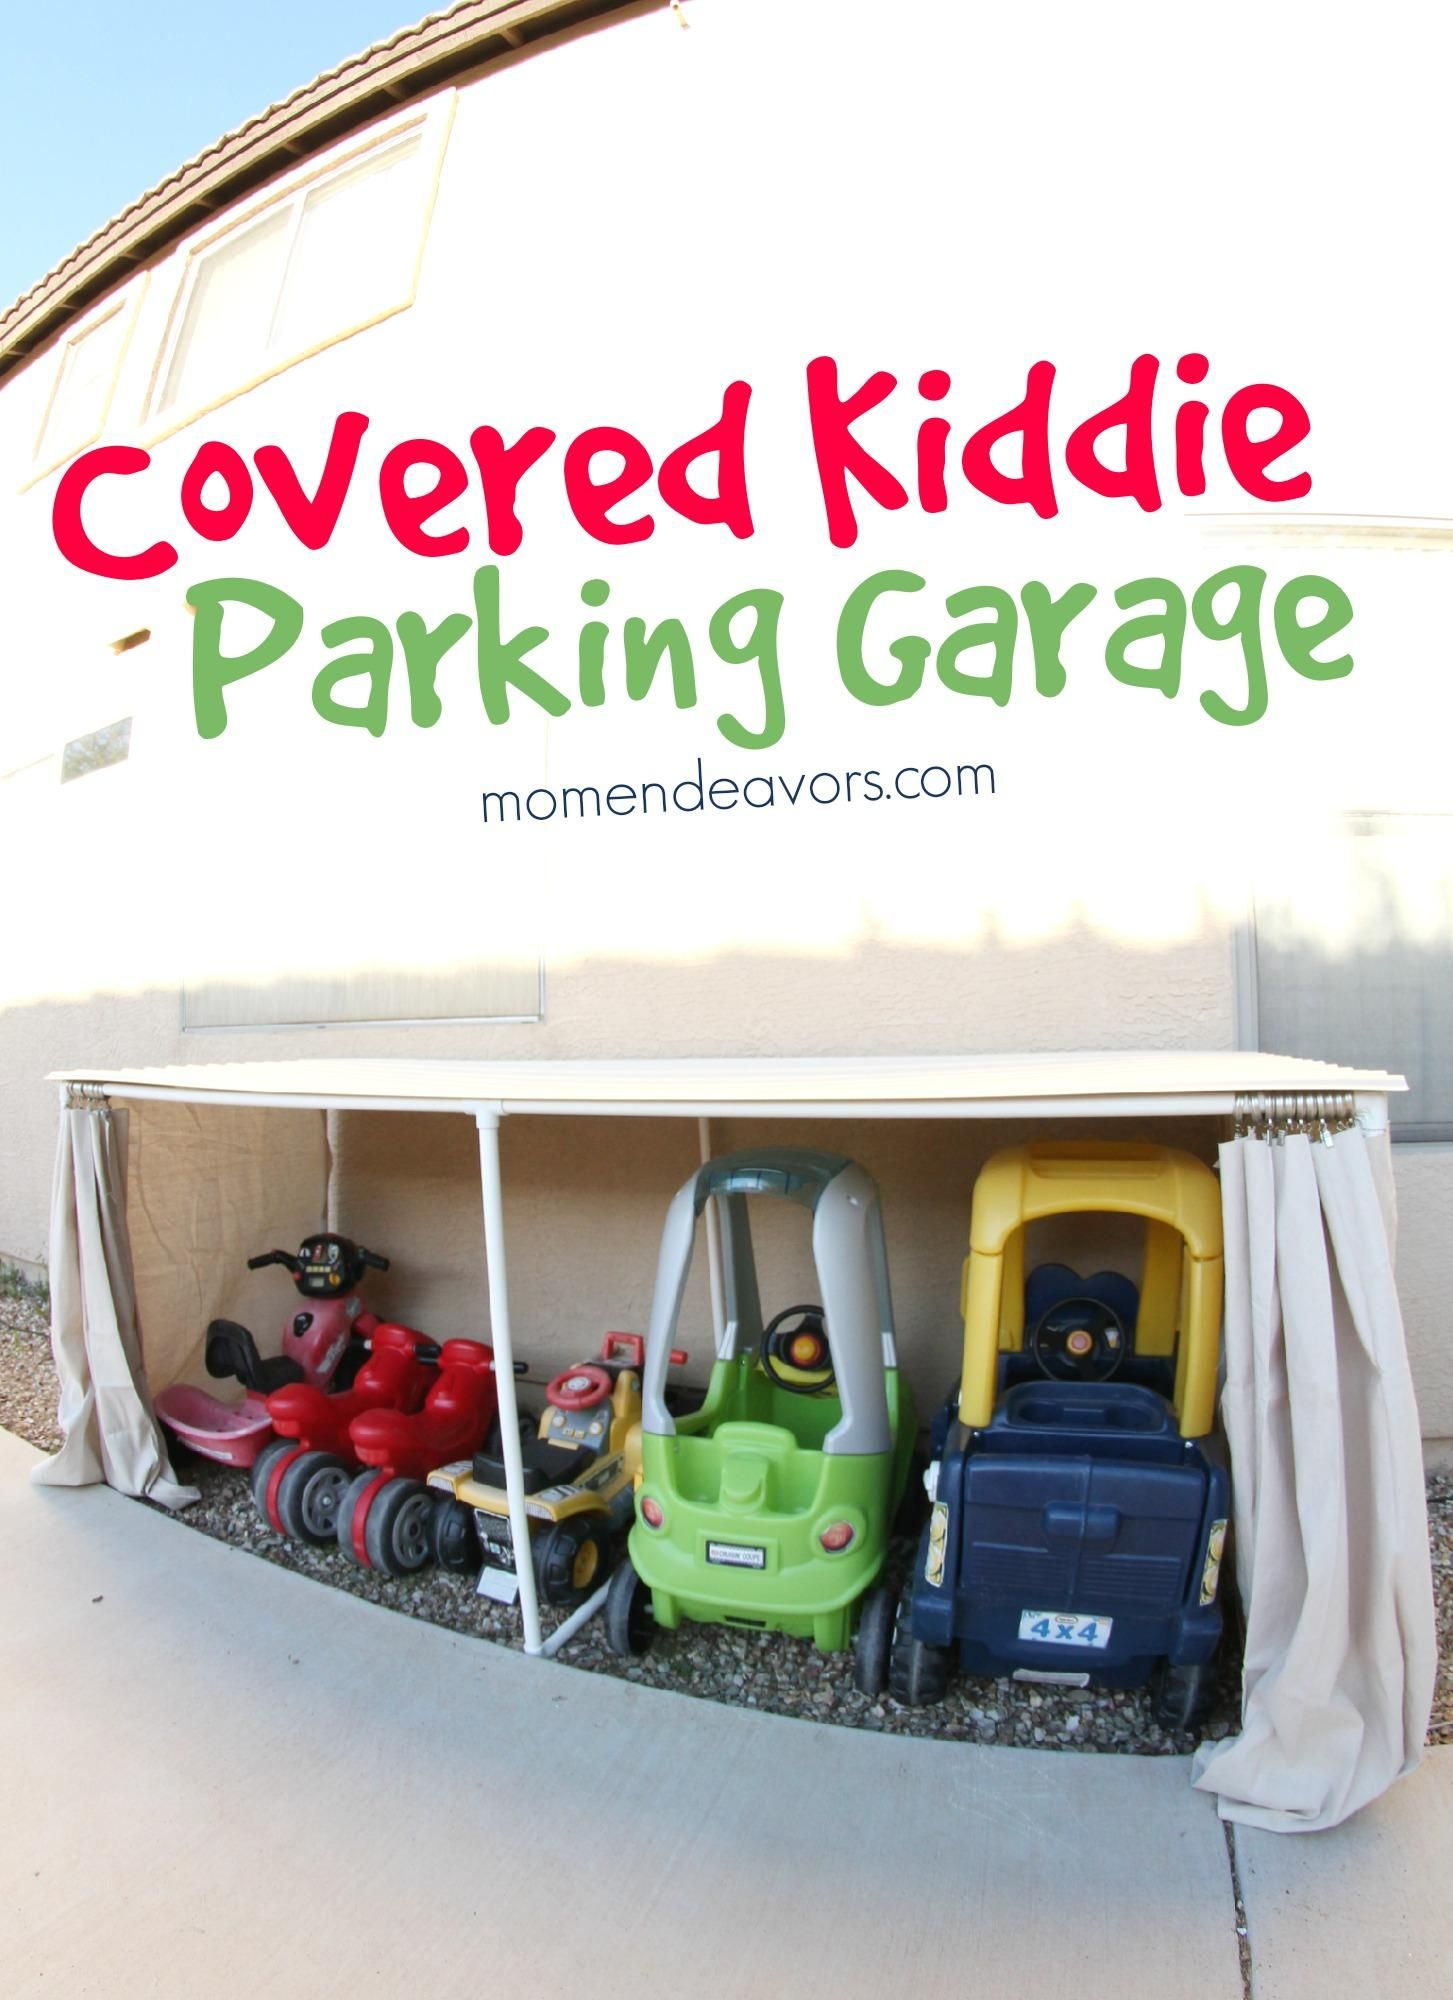 Build A Covered Kiddie Parking Garage To Keep Those Kid Cars Organized U0026  Protected From The